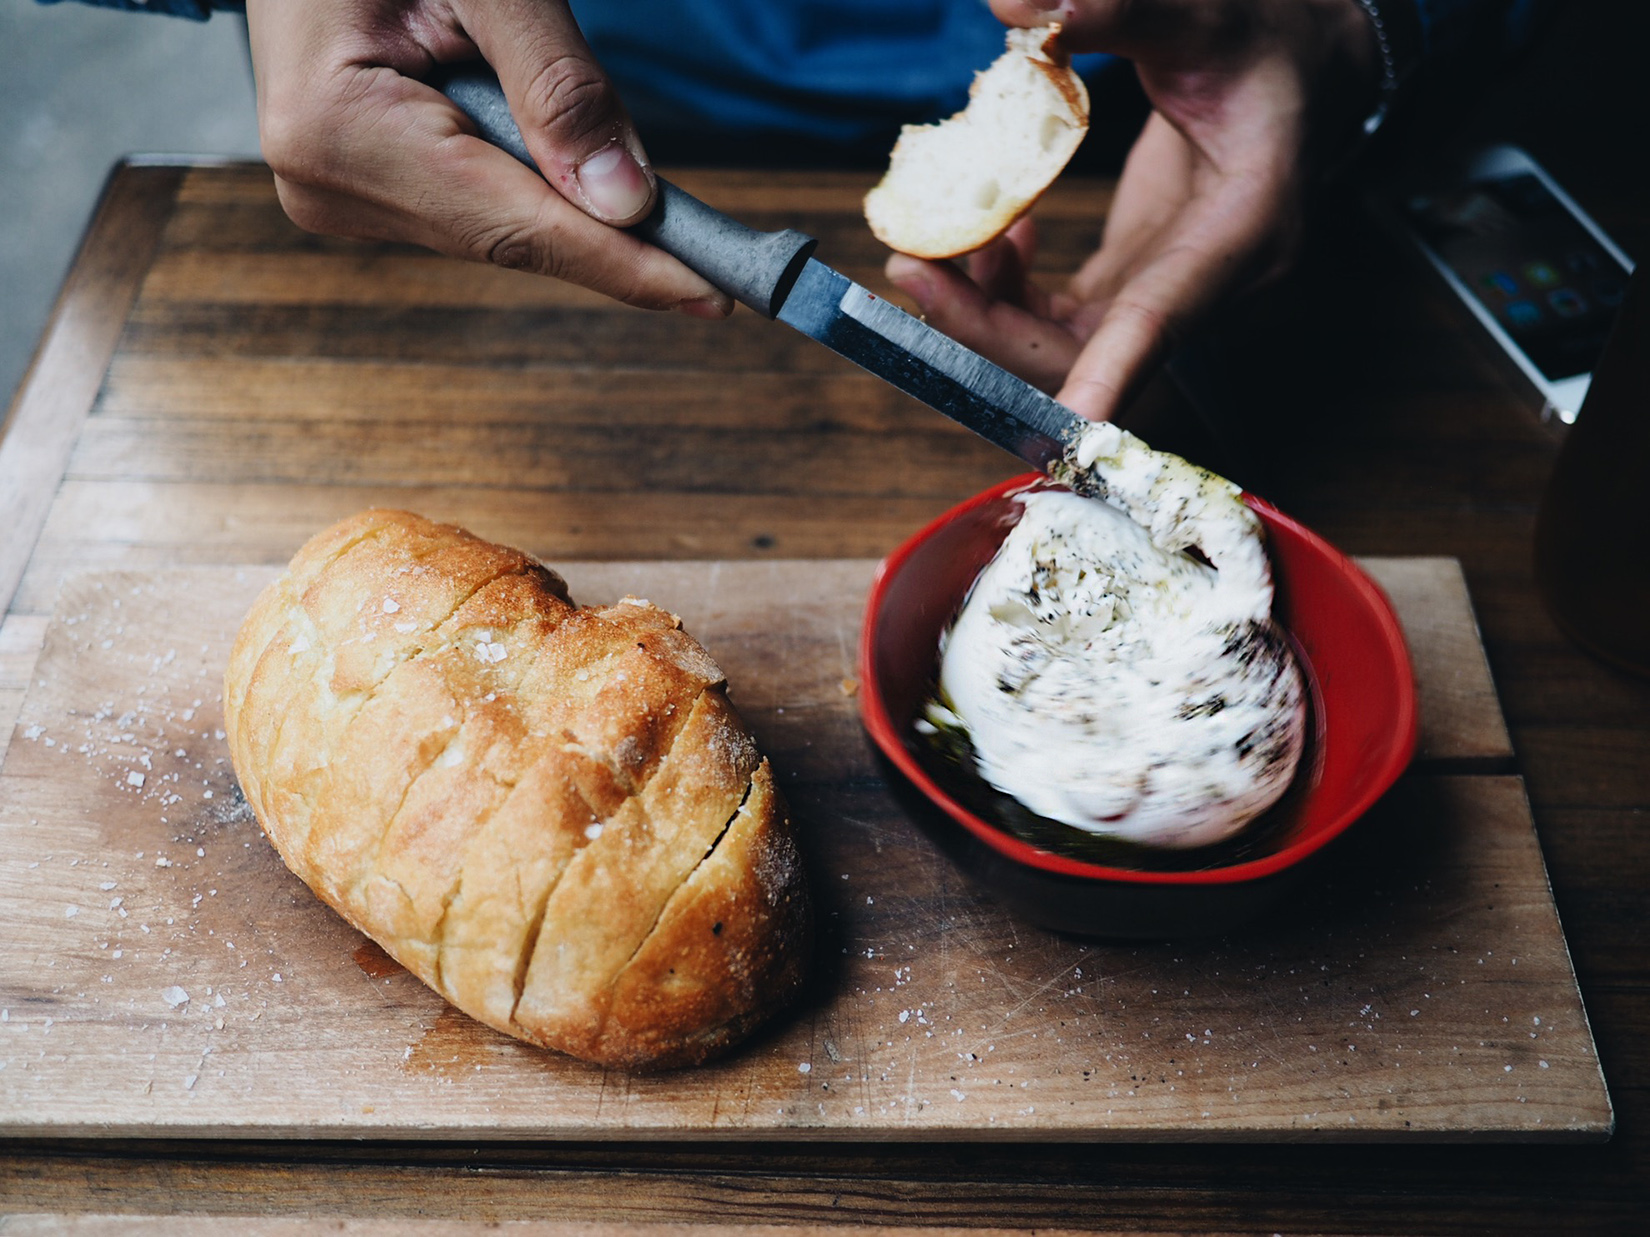 {Sung spreads burrata 3.}